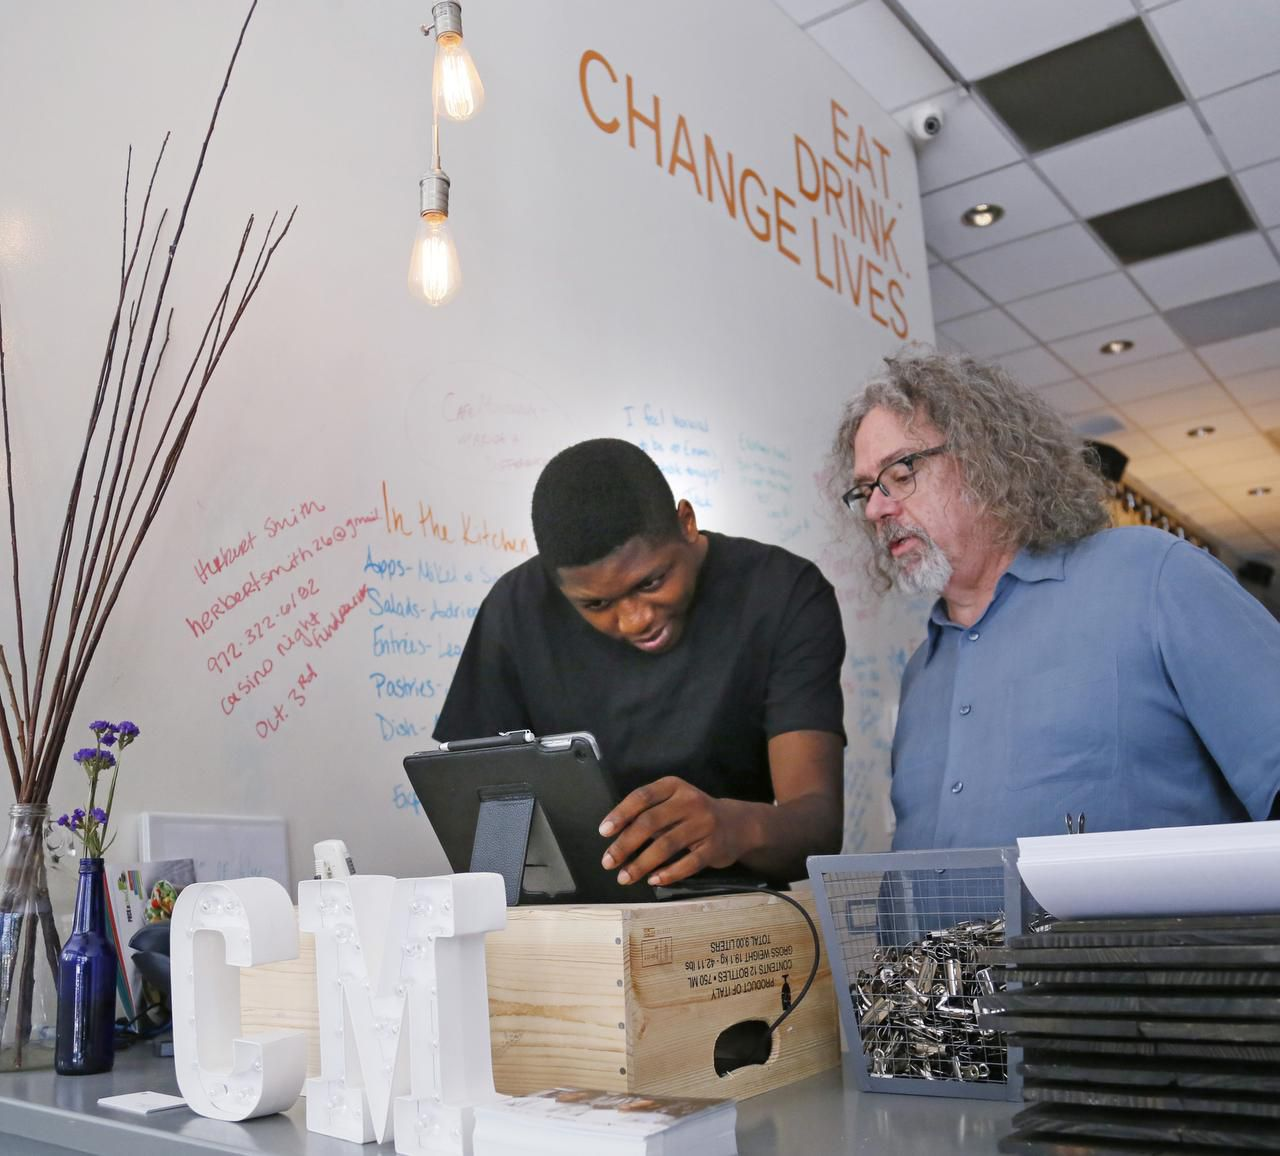 Malik Runnels (left) asks a question to Kenneth Pyron, director of operation at Café Momentum.